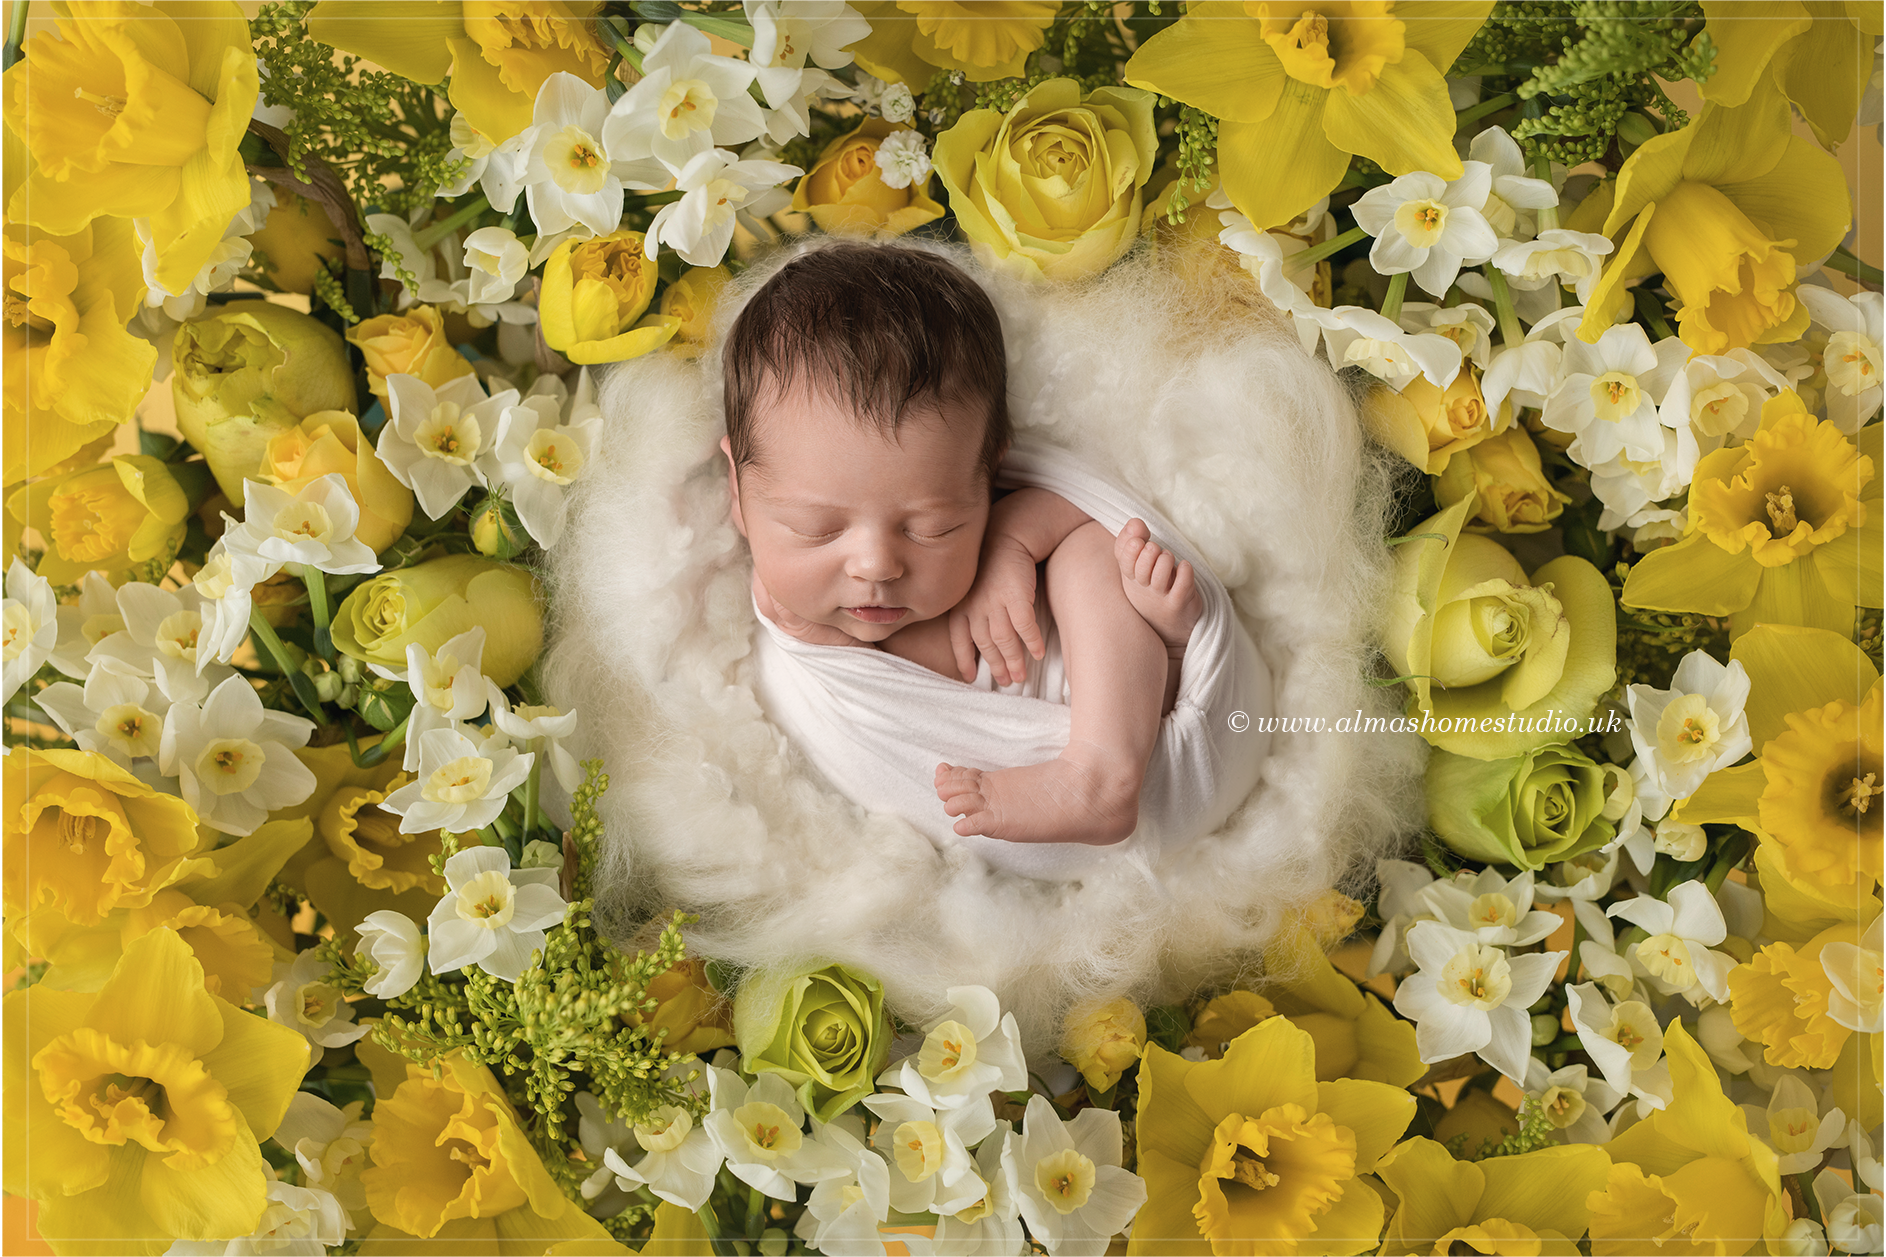 Alma's Home Studio - Award winning Newborn photographer based in Blandford , Dorset